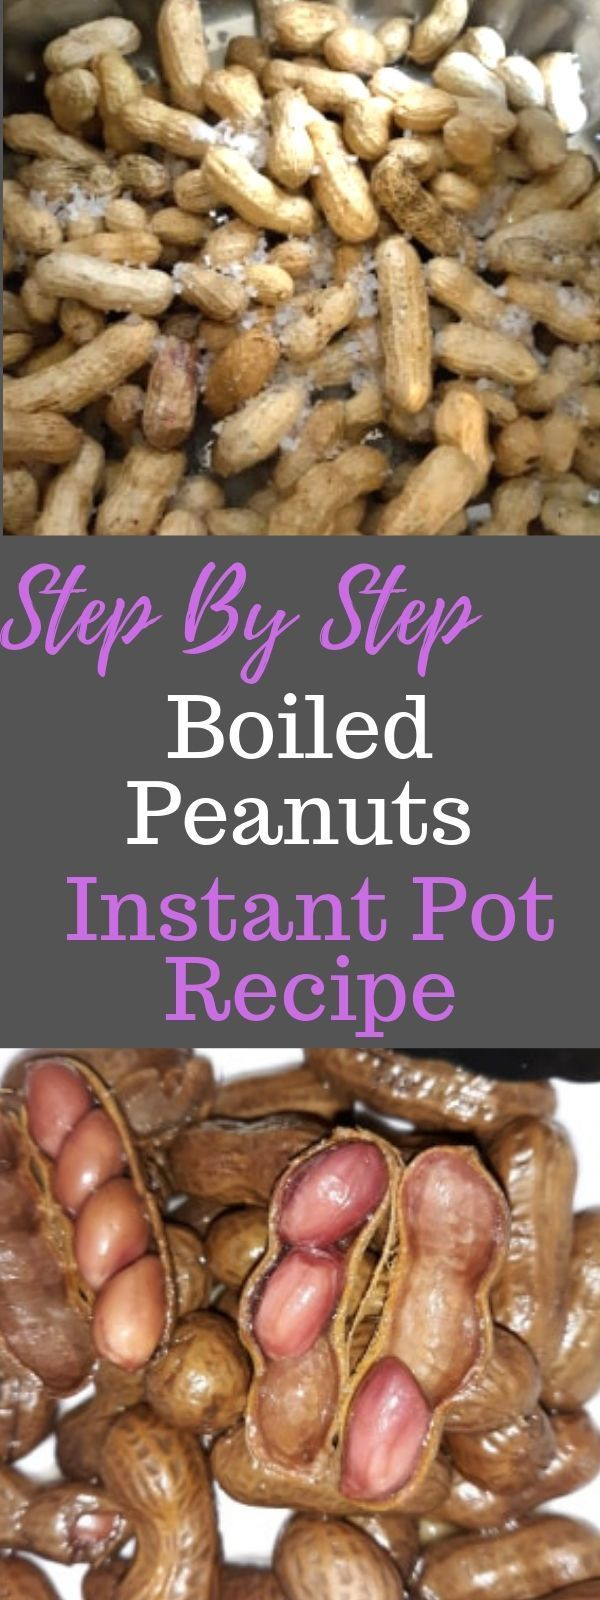 Instant Pot Southern Boiled Peanuts Recipe